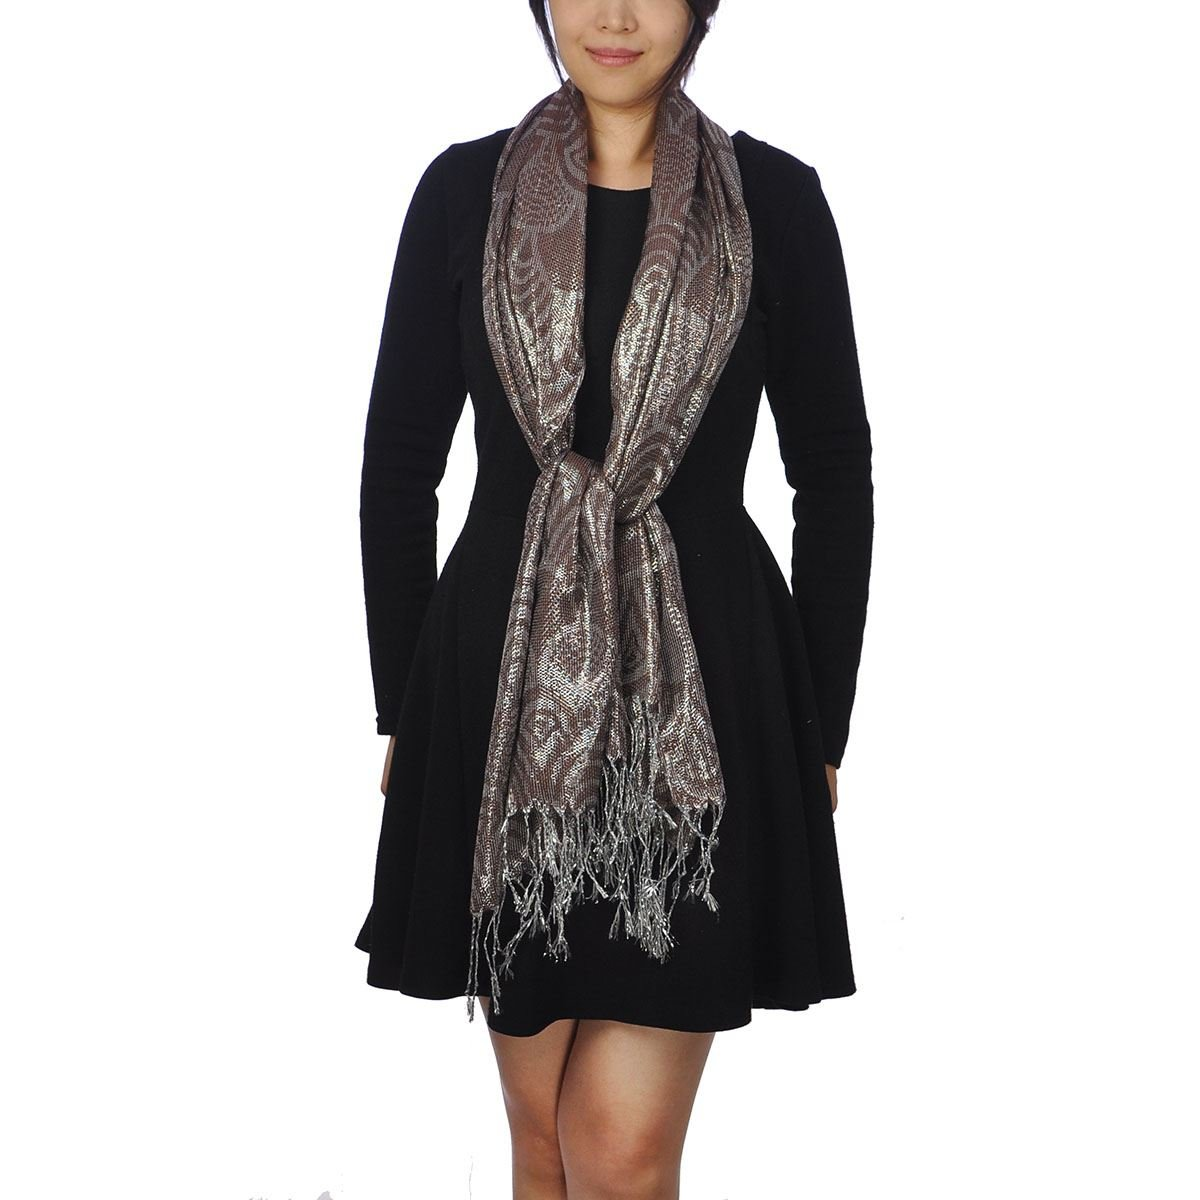 Metalic Silver Lurex Fabric, Neck Scarf, Shawl, Stole Wrap, Brown: Amazon.co.uk: Clothing